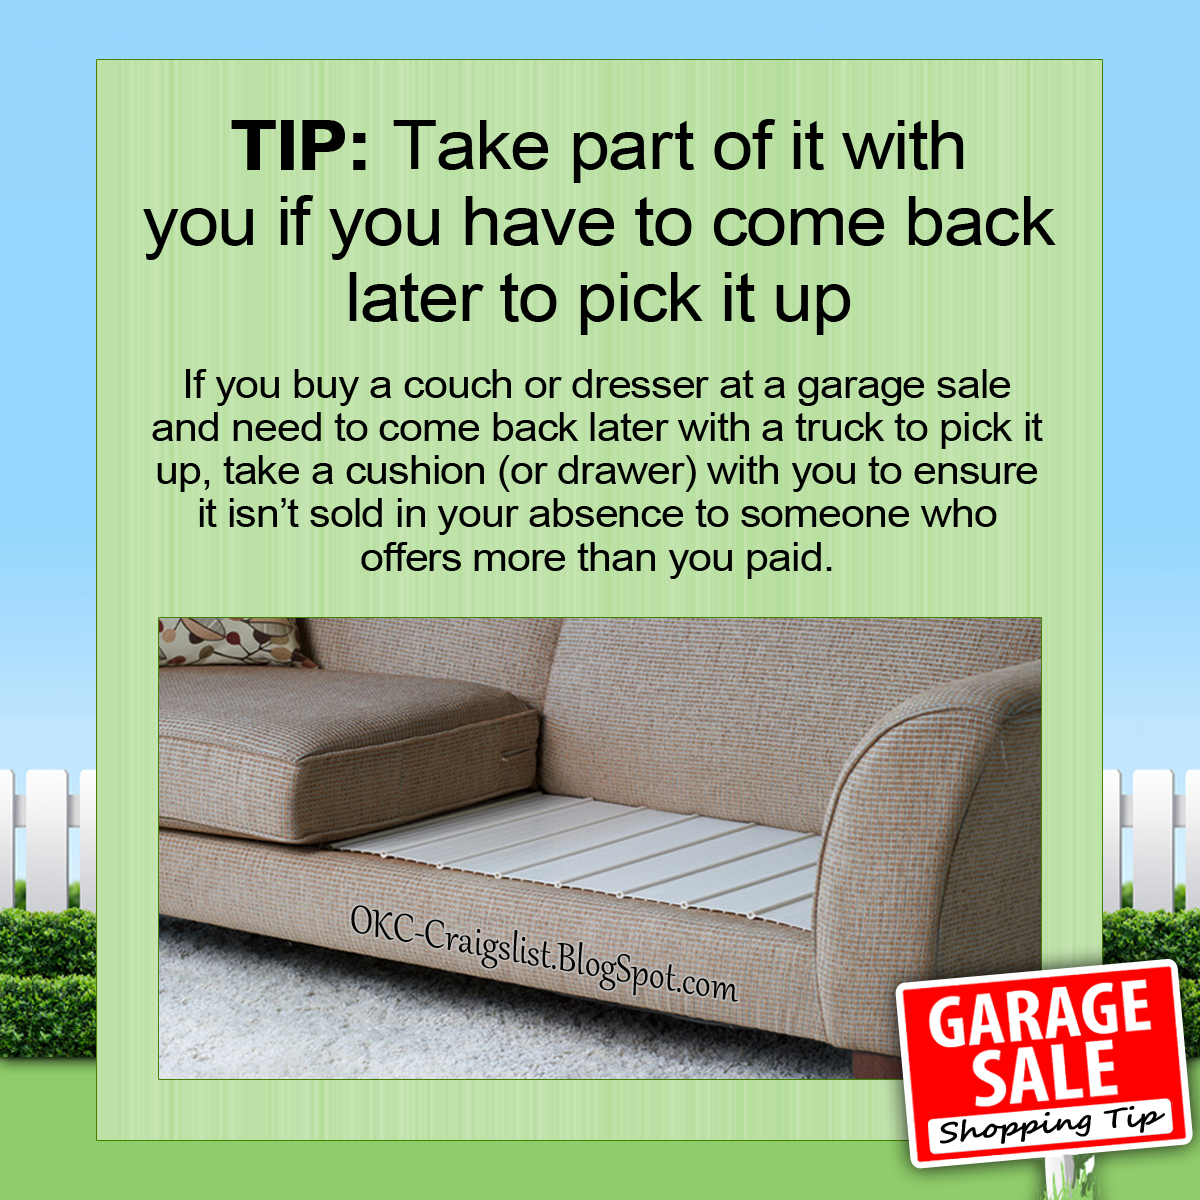 GARAGE SALE TIP: Do This If You Can't Take It With You